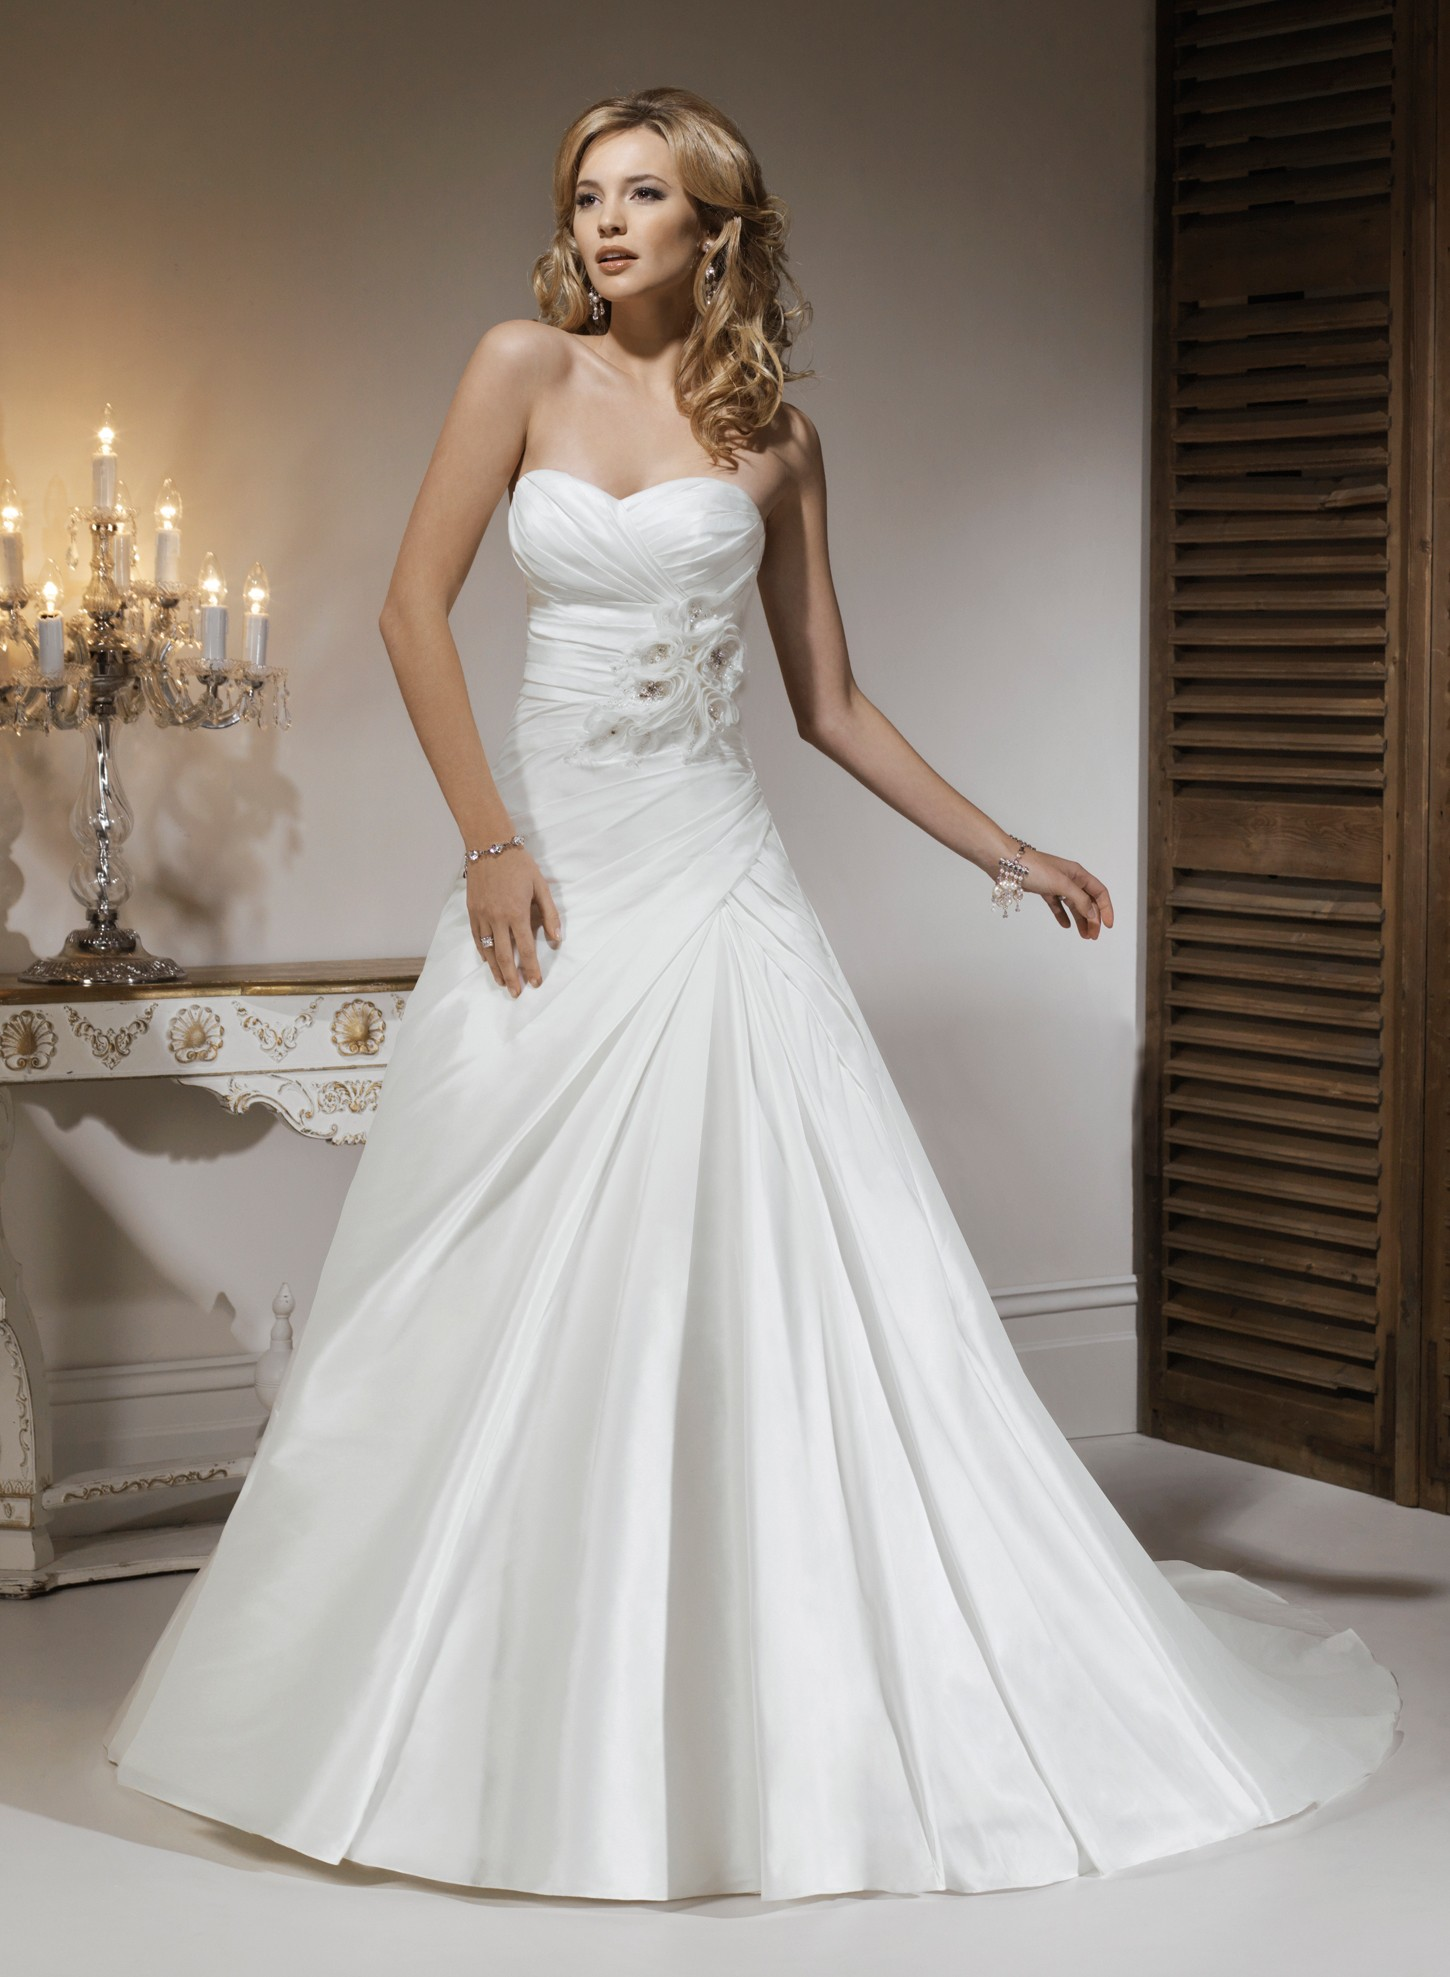 taffeta-sweetheart-strapless-neckline-a-line-wedding-dress